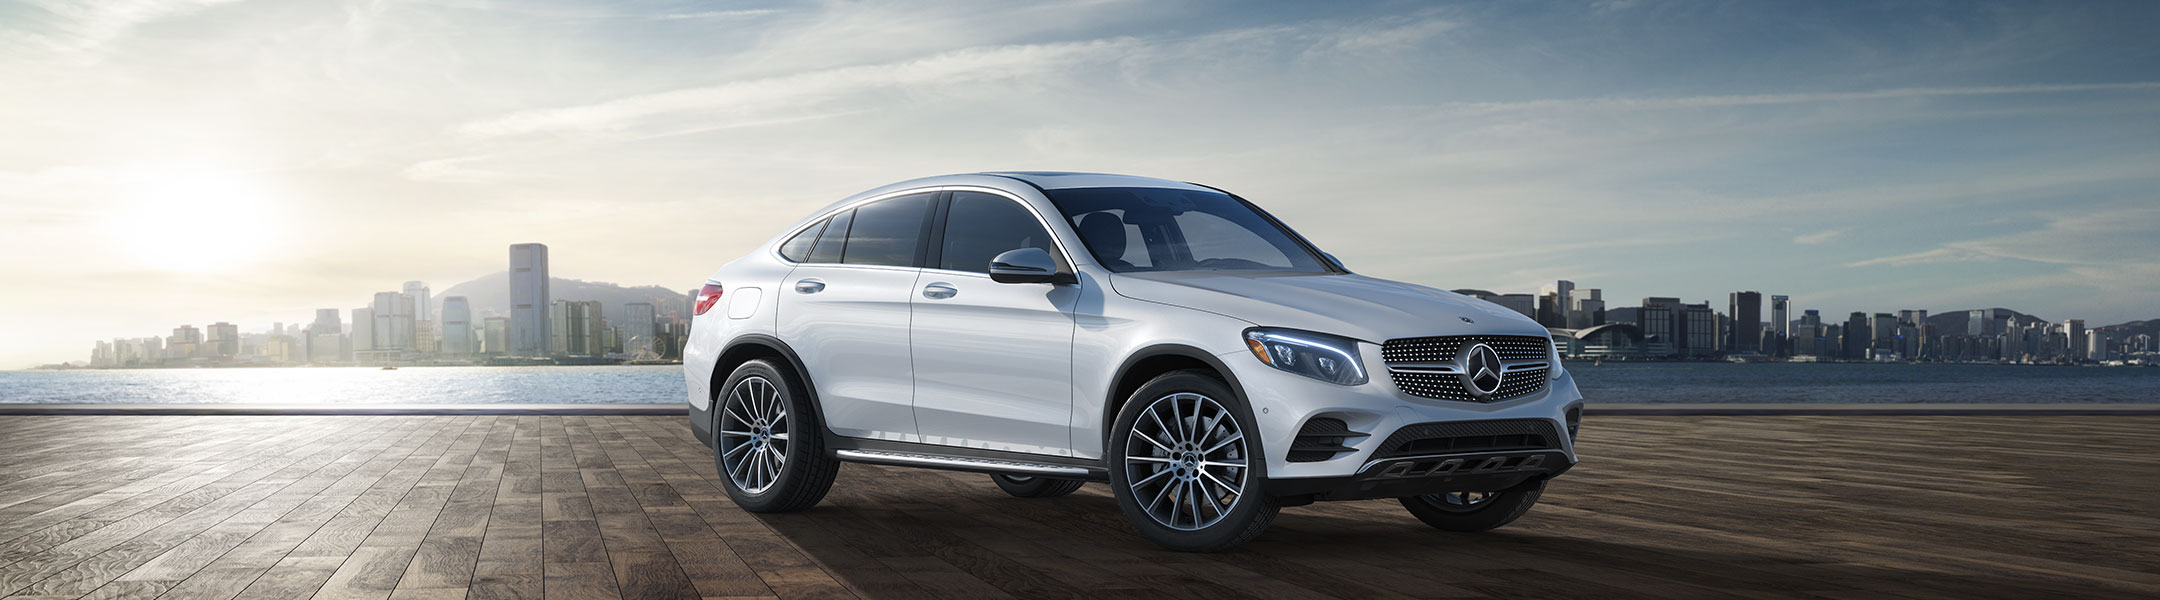 2018 GLC 4MATIC Coupe